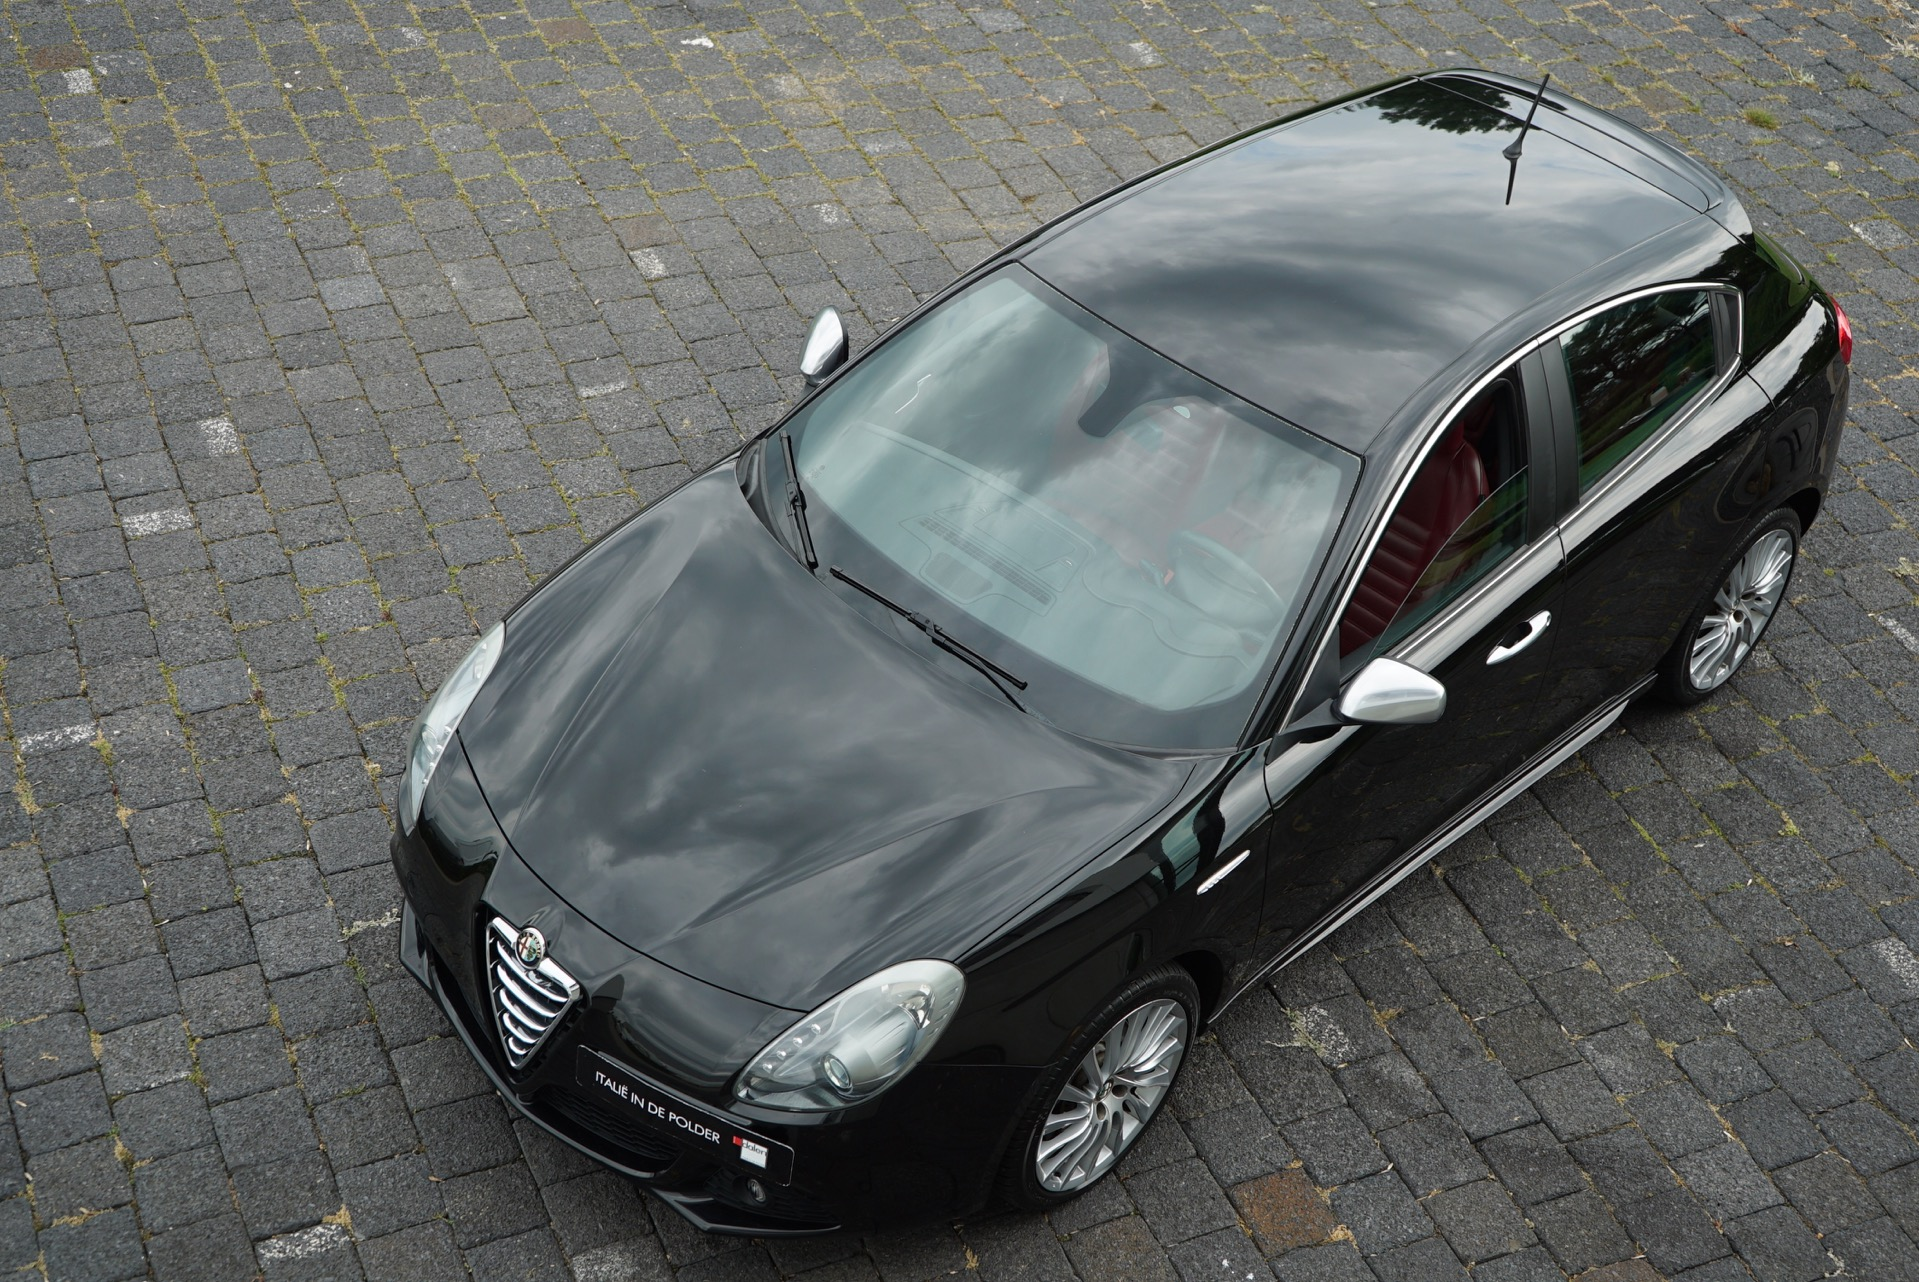 ALFA ROMEO GIULIETTA 1.4 TURBO MULTIAIR DISTINCTIVE 170